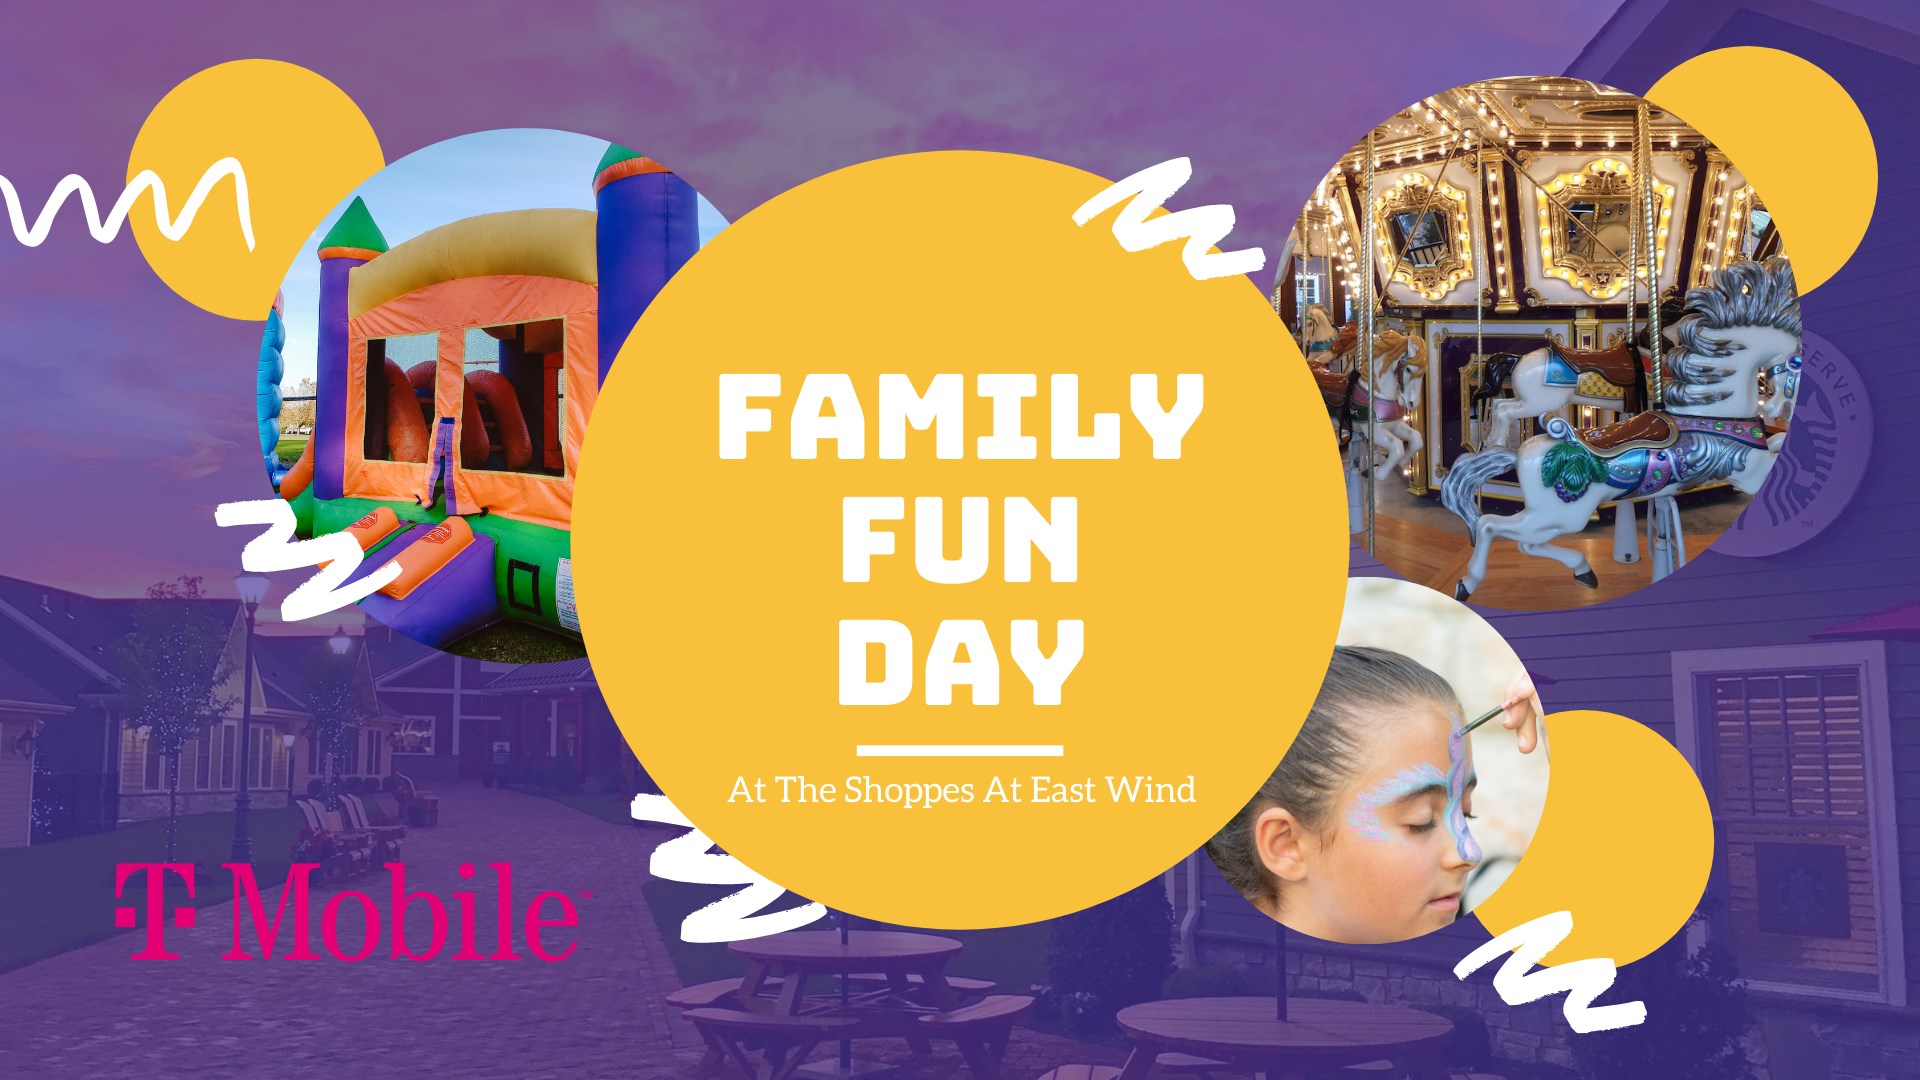 Family Fun Day at The Shoppes at East Wind